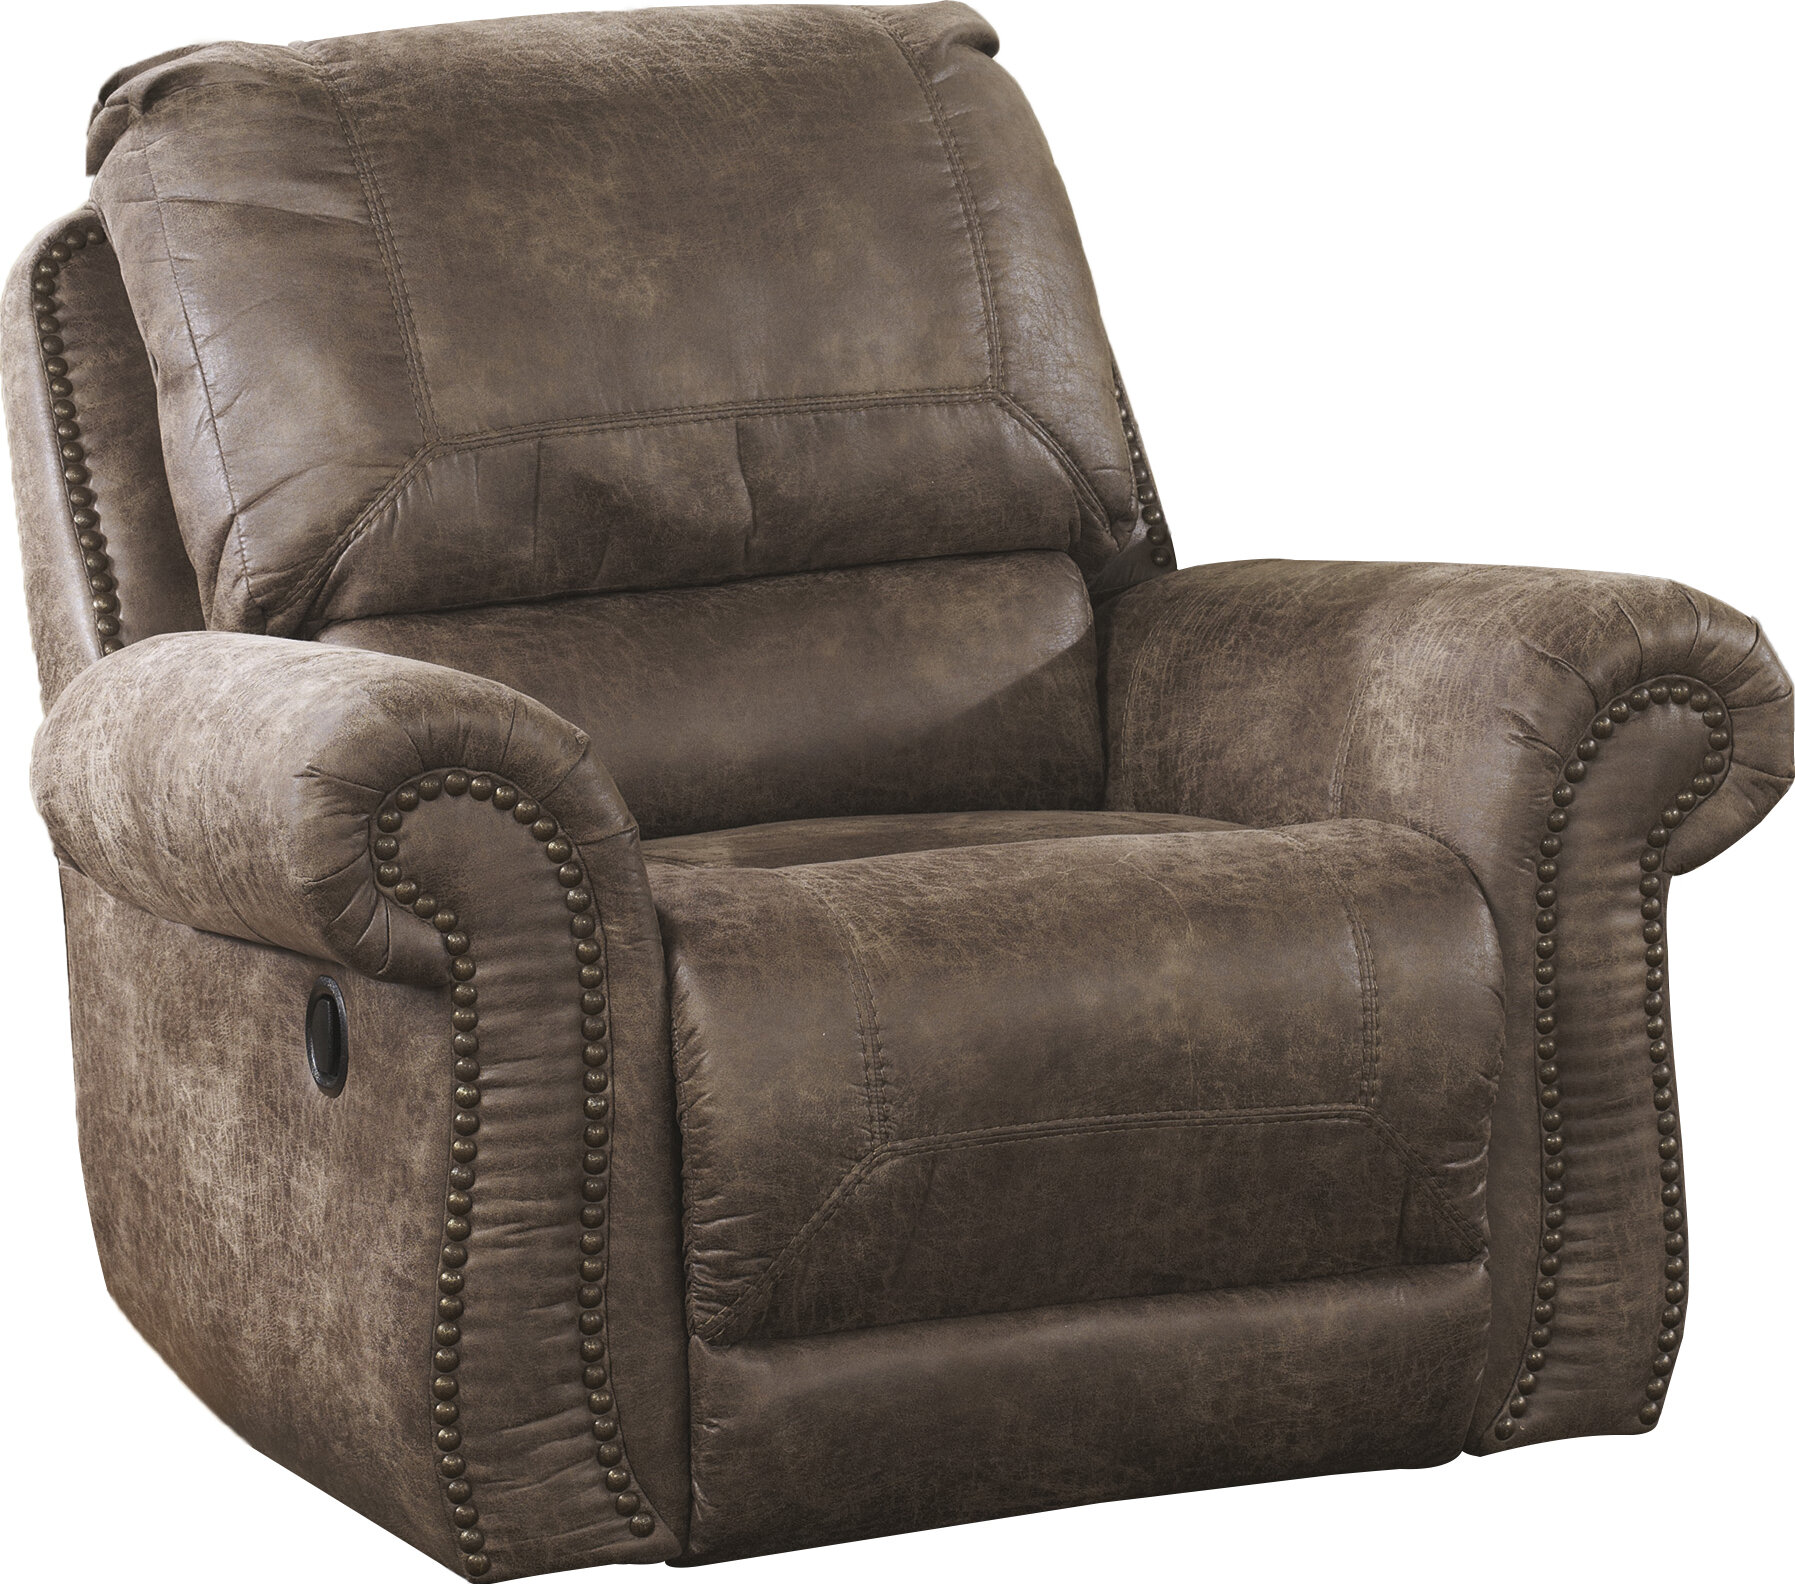 overstock pu by knight home product today leather garden chair hawthorne free shipping recliner christopher glider